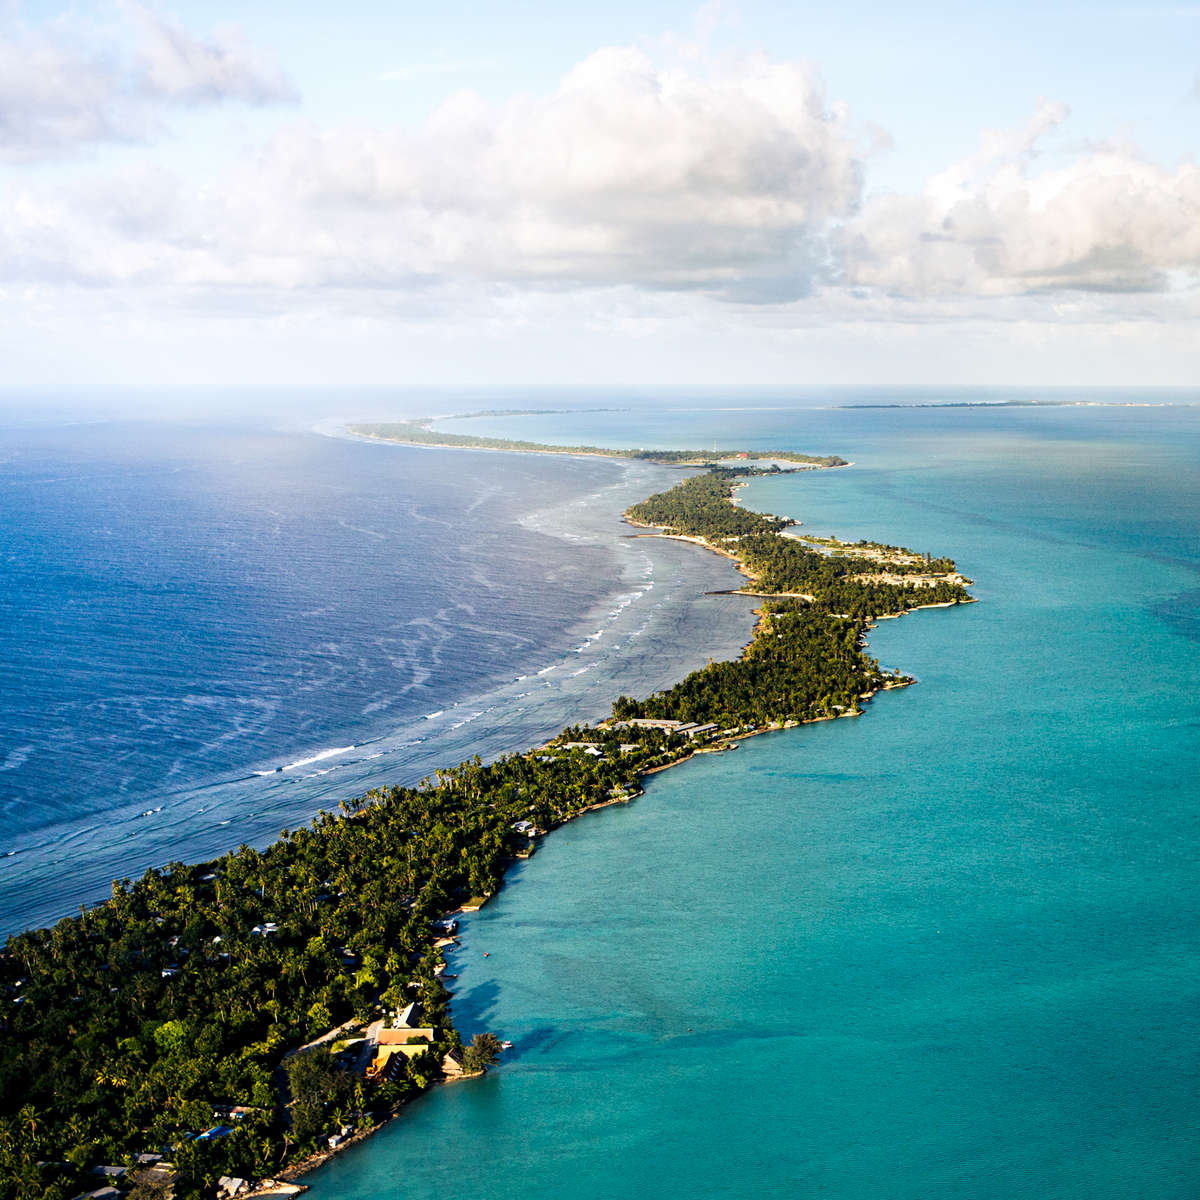 Aerial photograph of Tarawa Island, Kiribati at high tide.